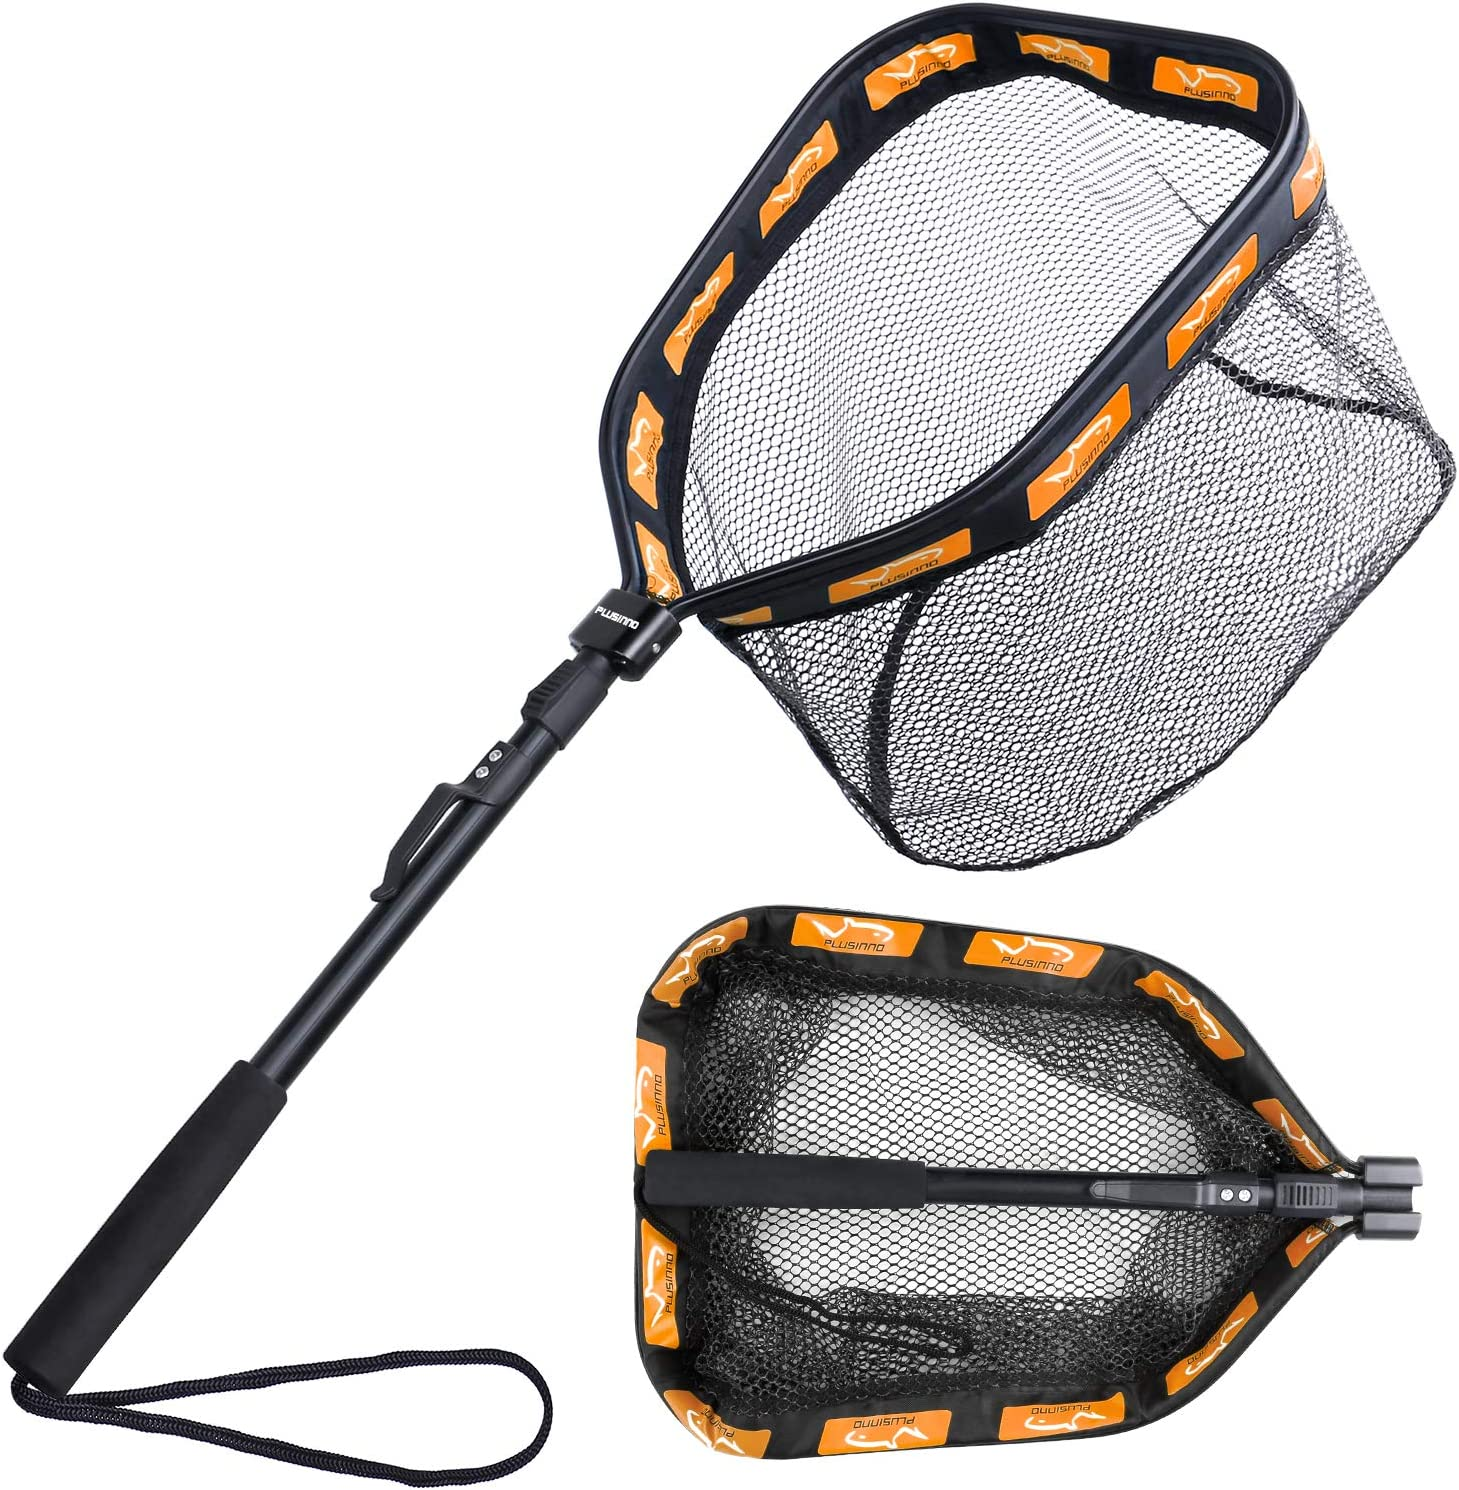 PLUSINNO Floating Fishing Net for Steelhead, Salmon, Fly, Kayak, Catfish, Bass, Trout Fishing, Rubber Coated Landing Net for Easy Catch & Release, Compact & Foldable for Easy Transportation & Storage